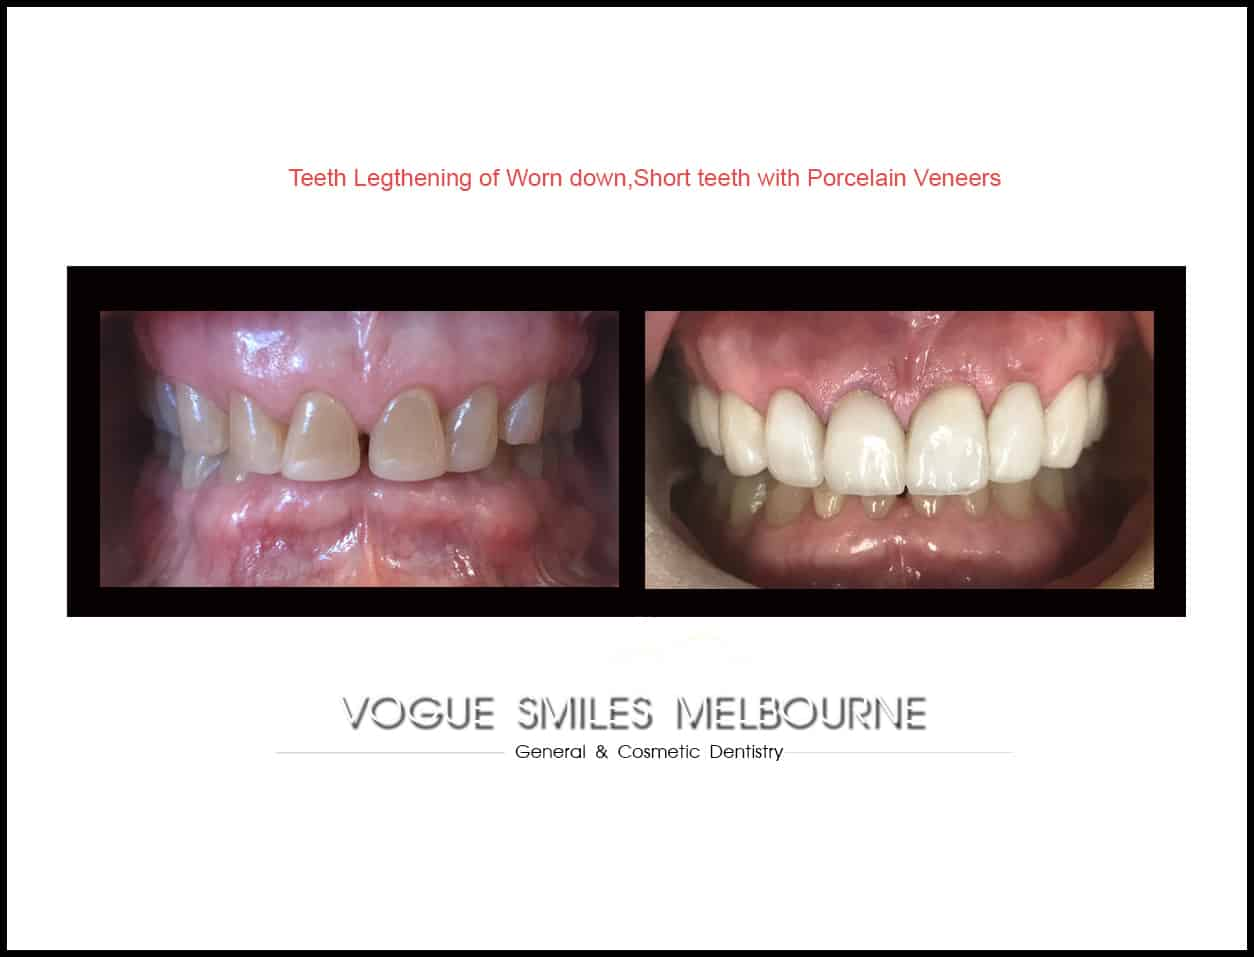 Who are not a good candidate for Dental Veneers